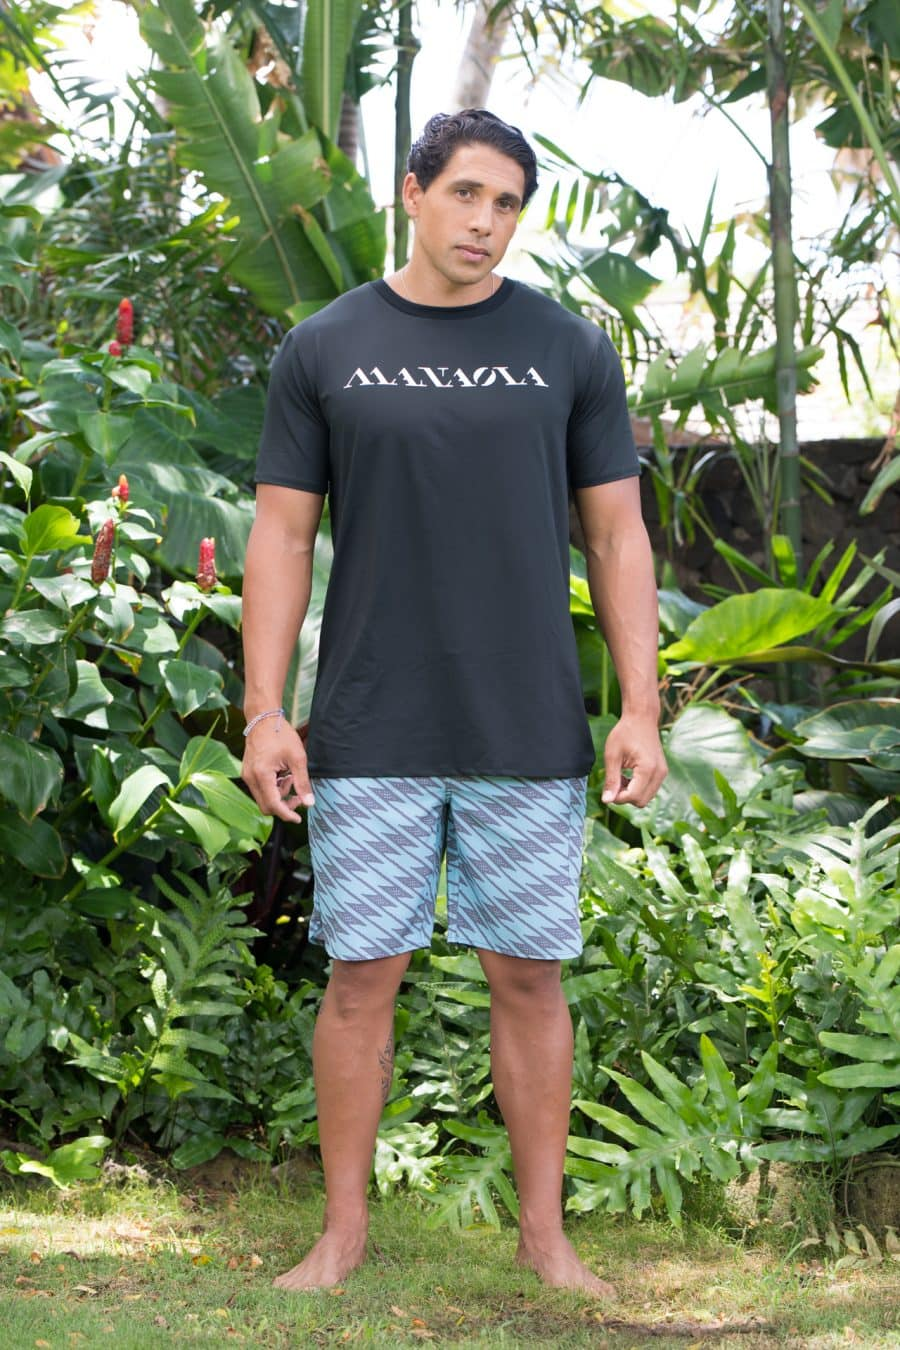 Male model wearing Manaola Logo T-Shirt in Solid Black with White Writing - Front View